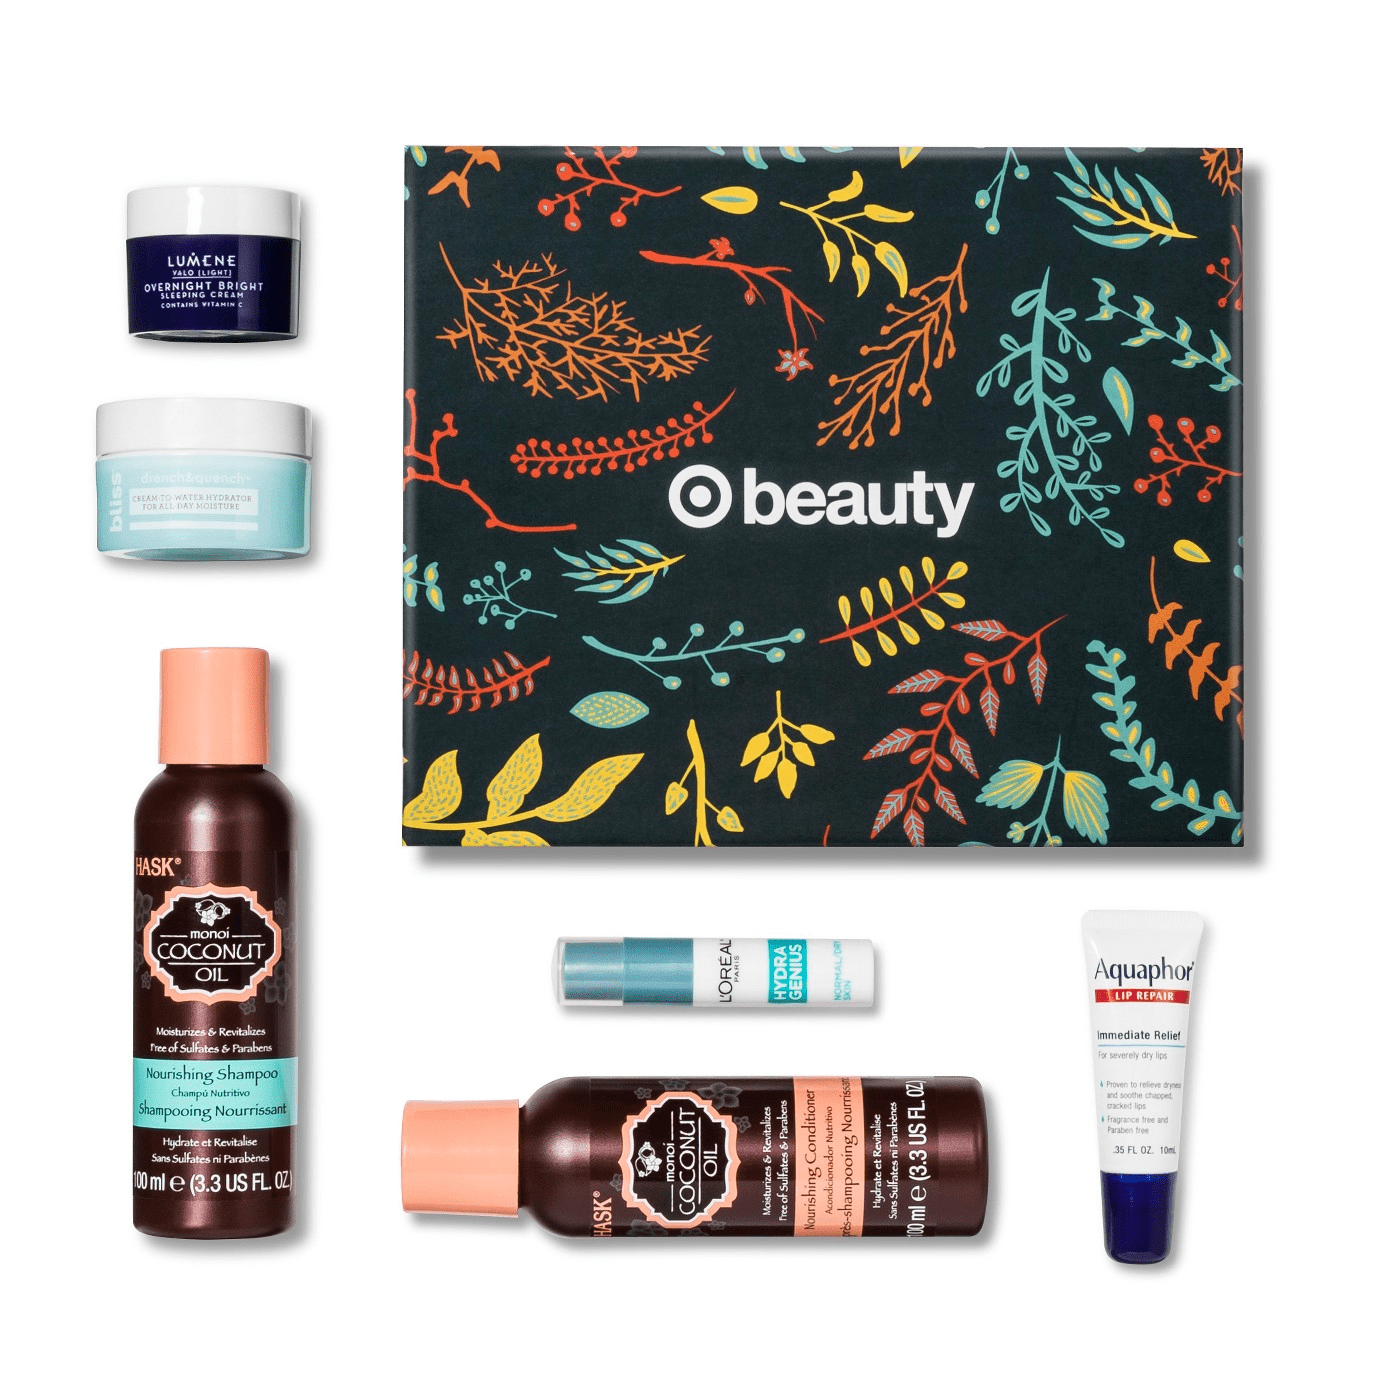 $7 Target Beauty Box November 2018 Holiday Beauty Box Available Now!